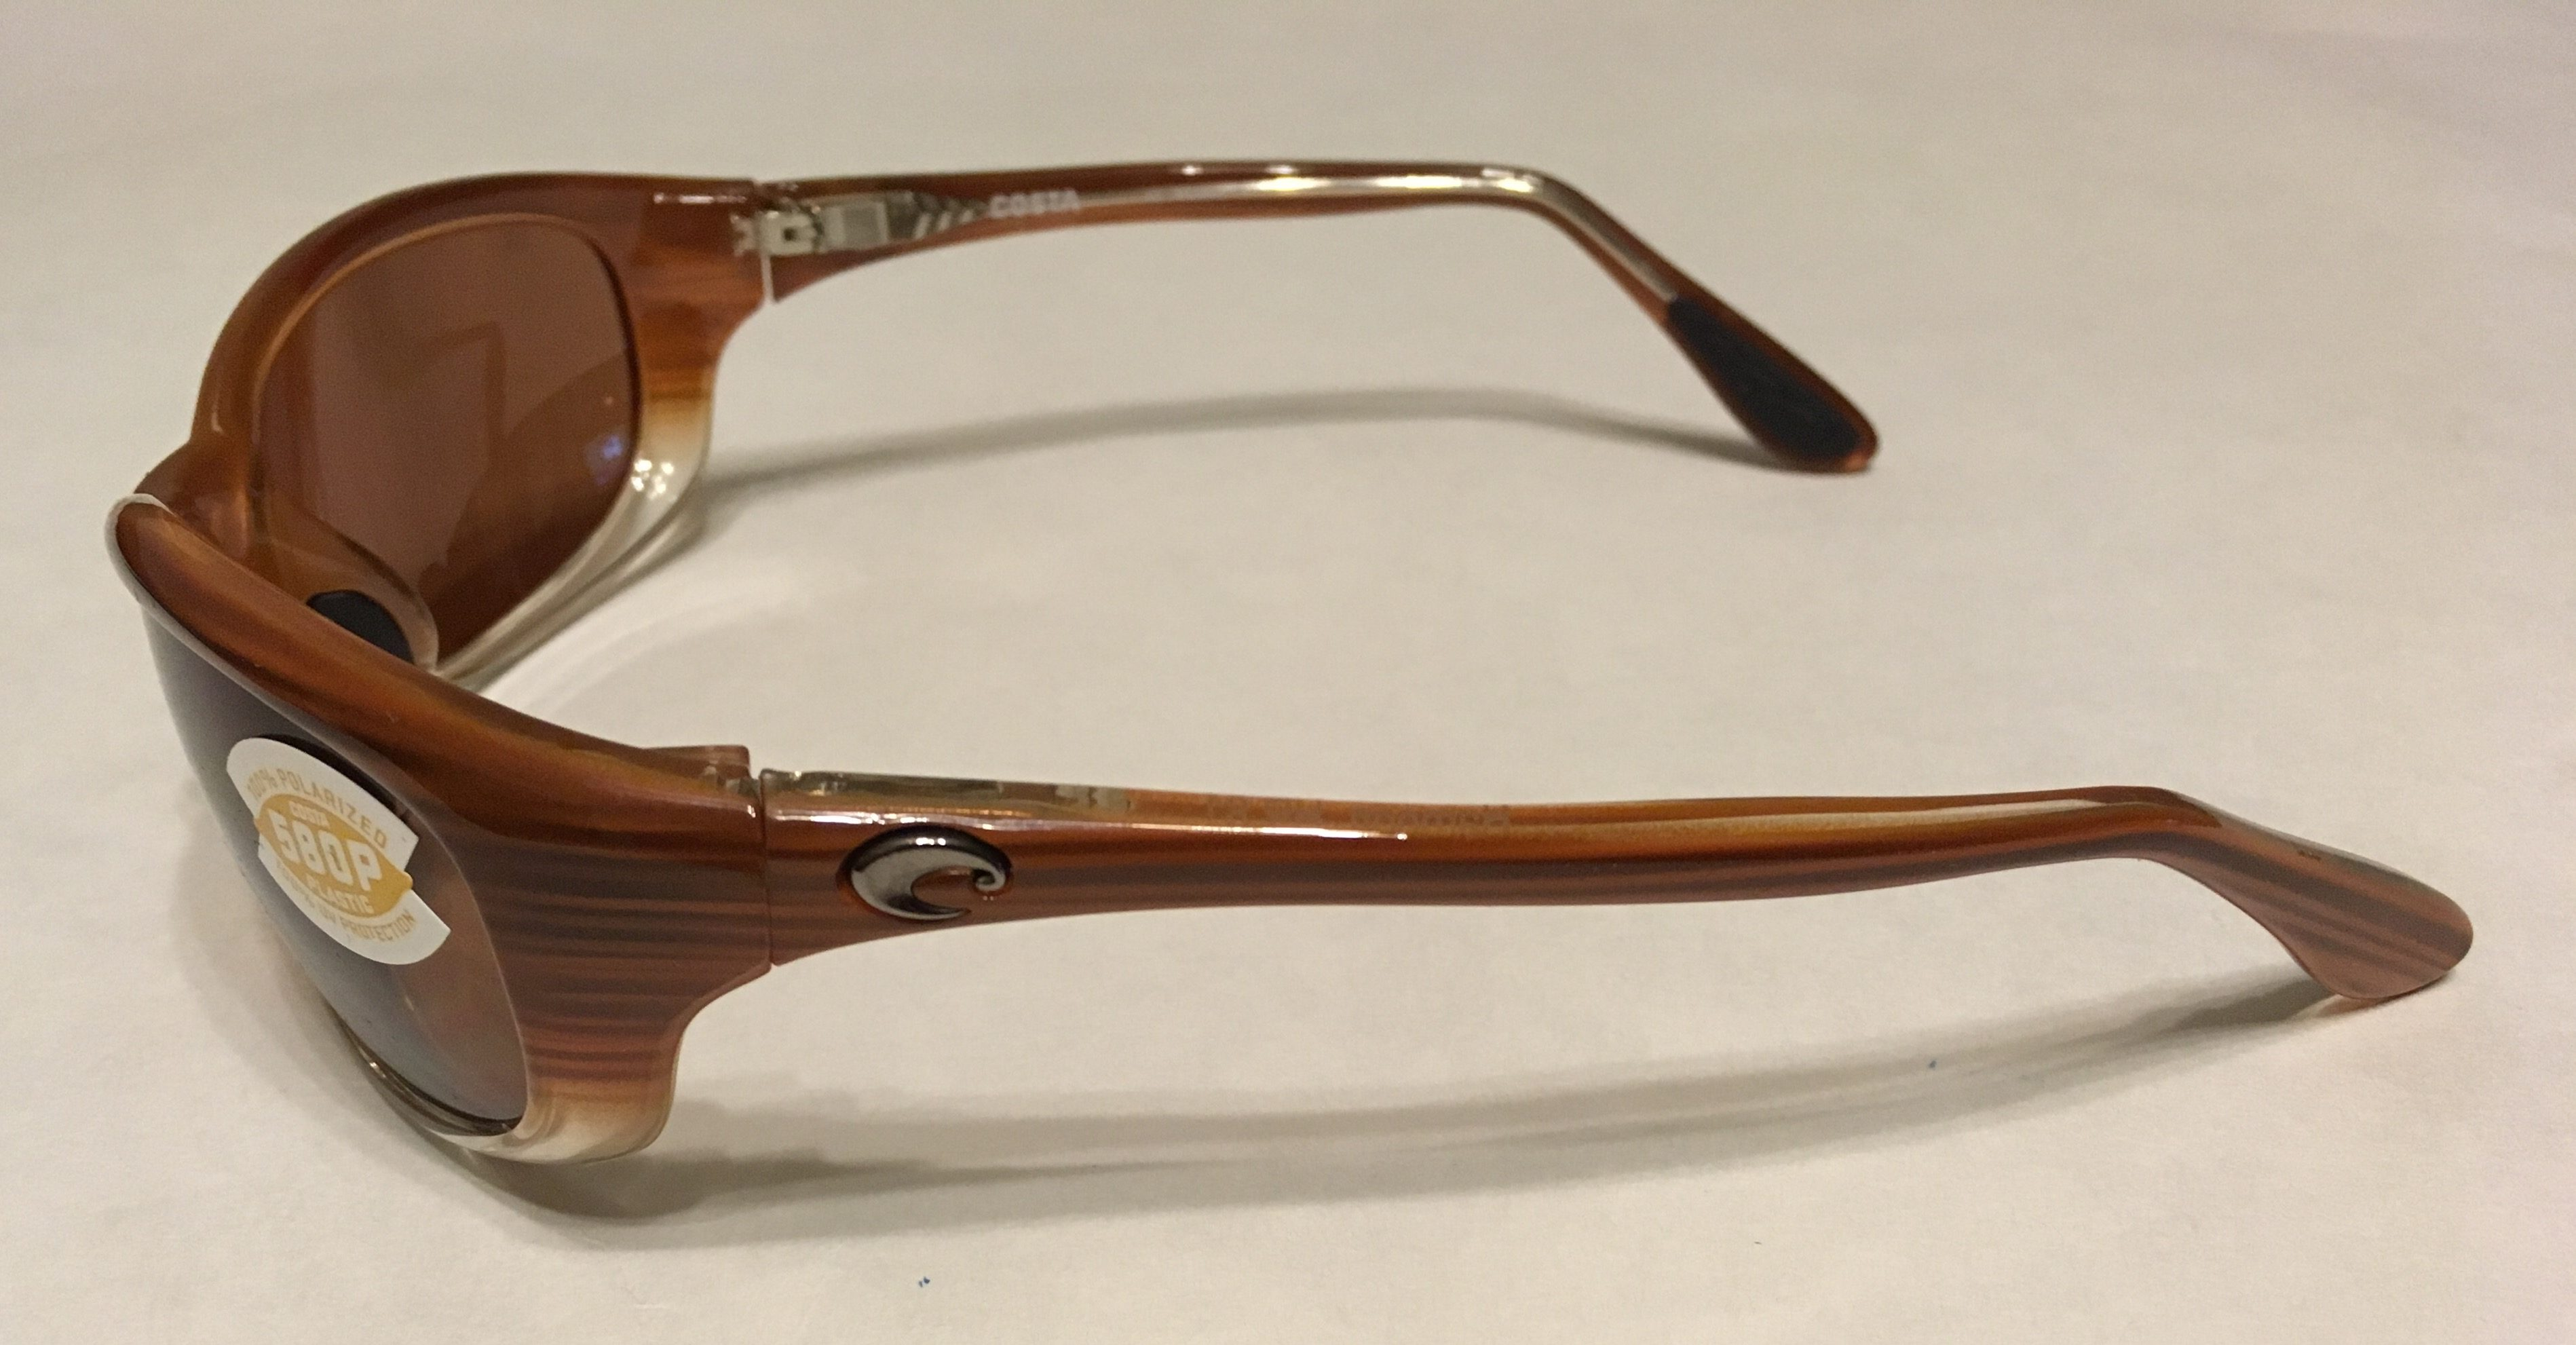 ac36a0b0719f NEW Costa Del Mar Harpoon Sunglasses - Wood Fade - POLARIZED Copper ...